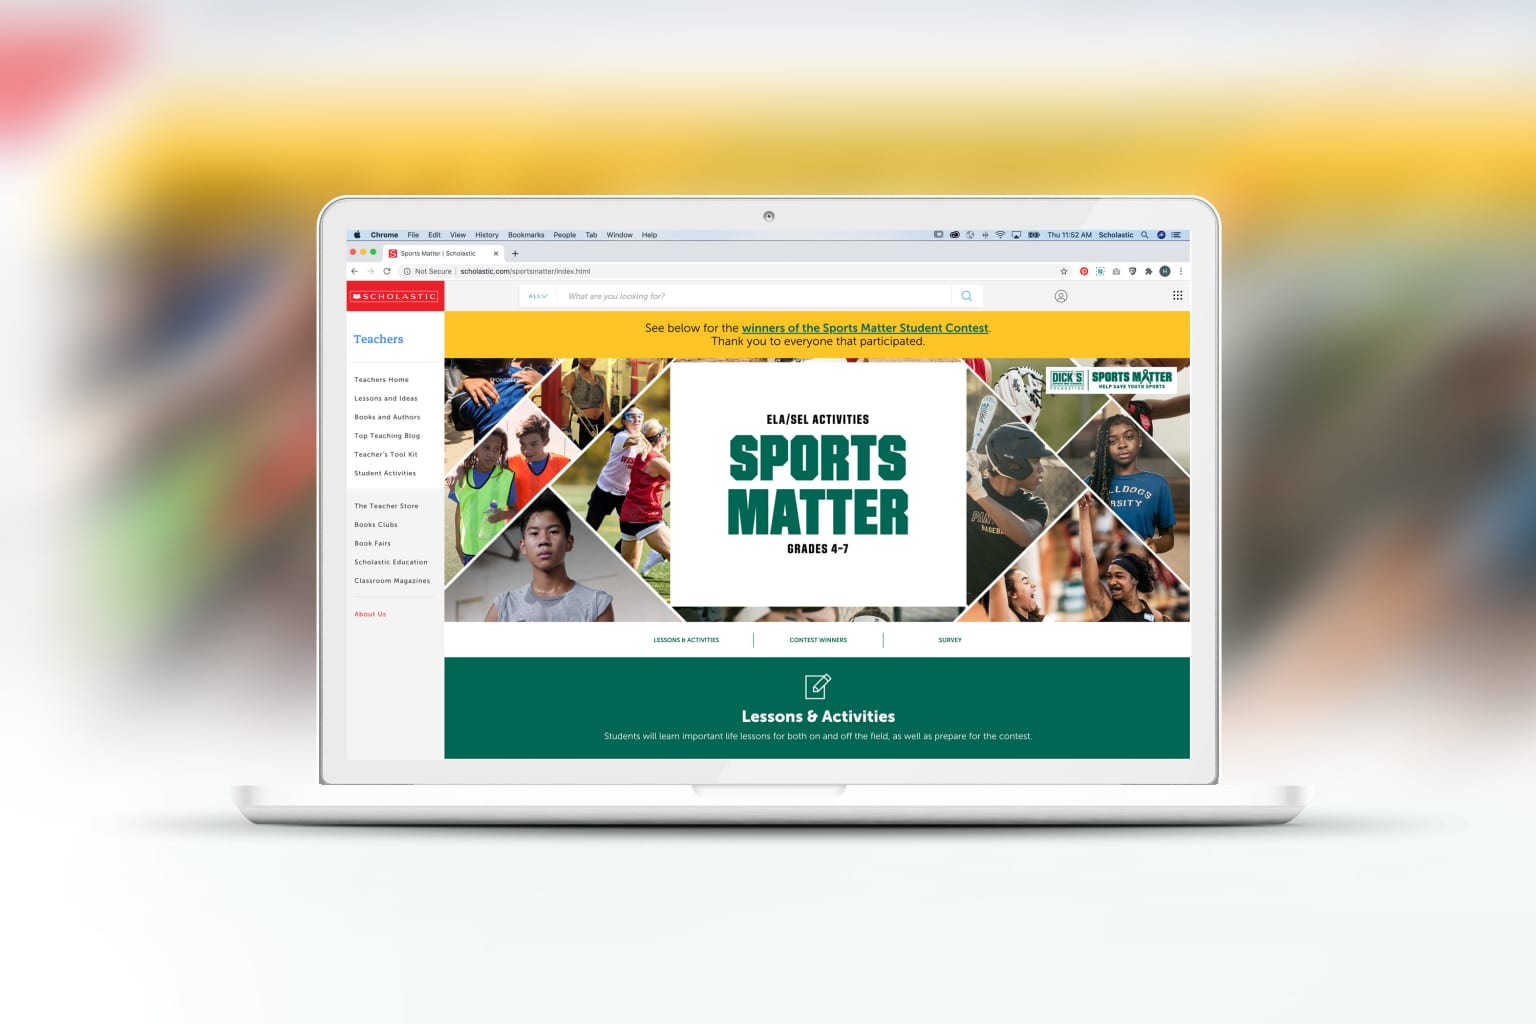 Dick's Sporting Goods Foundation Sports Matter